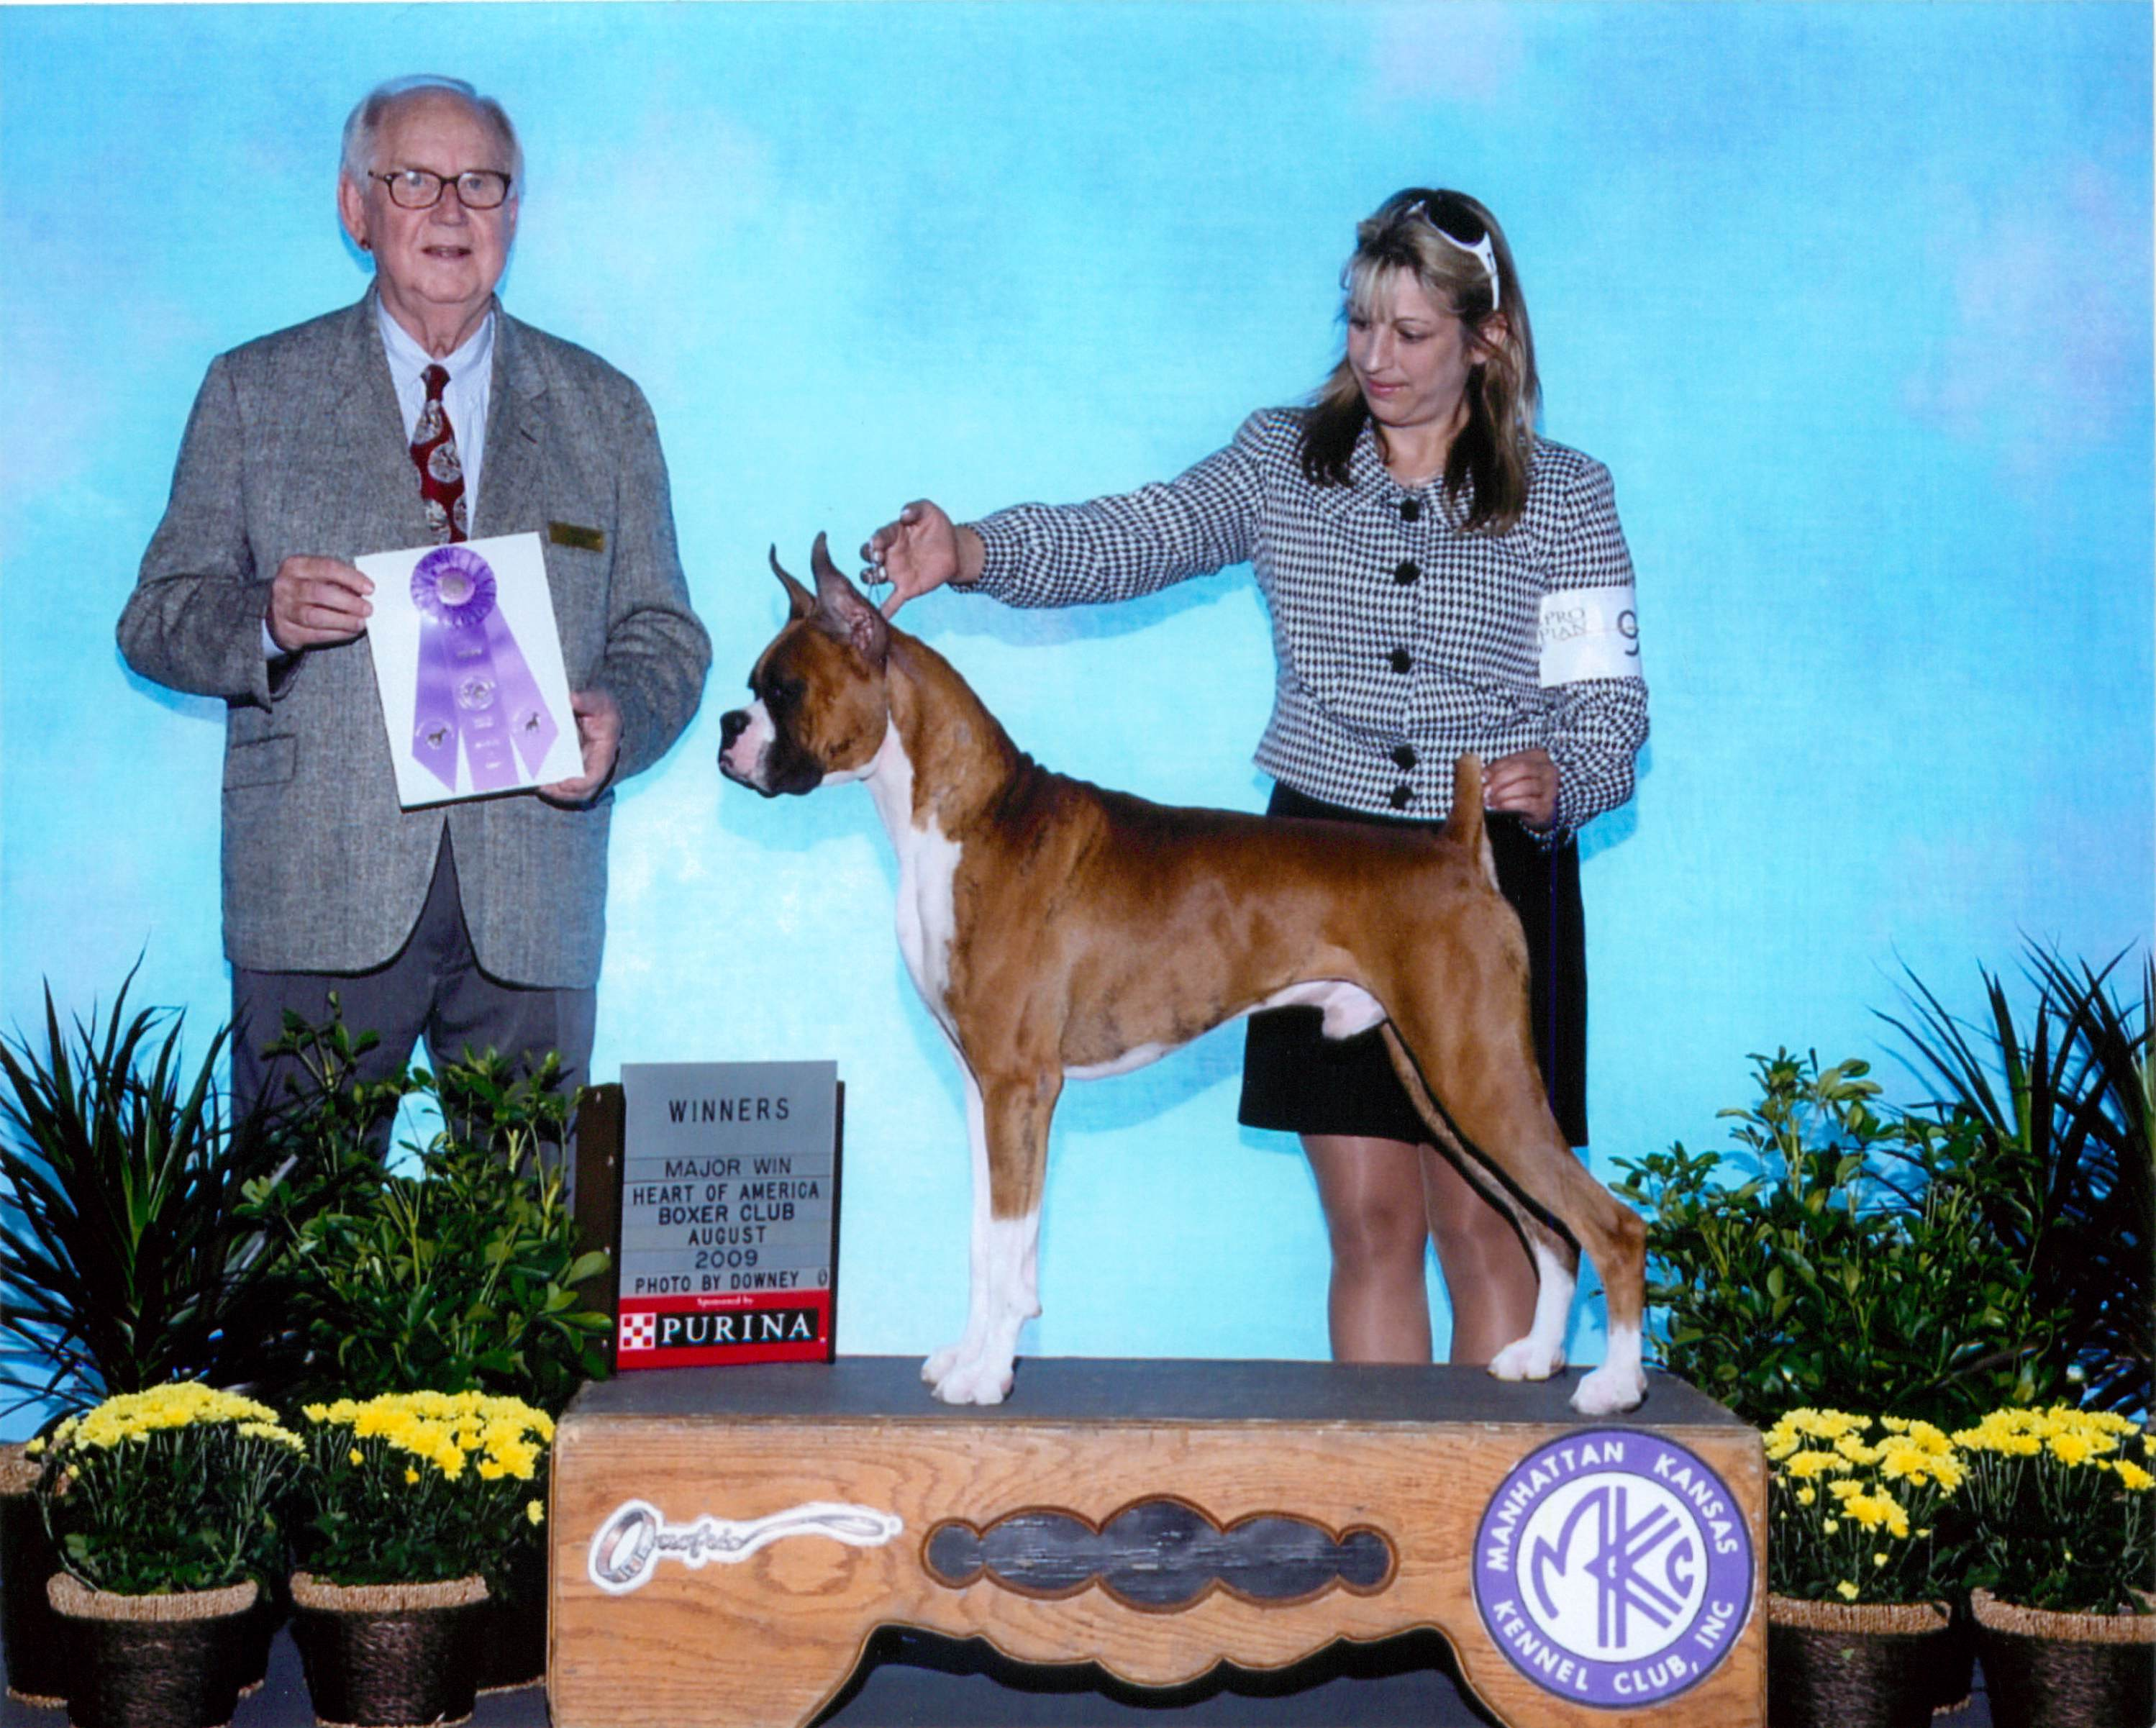 Winners Dog @ 2009 Specialty Show